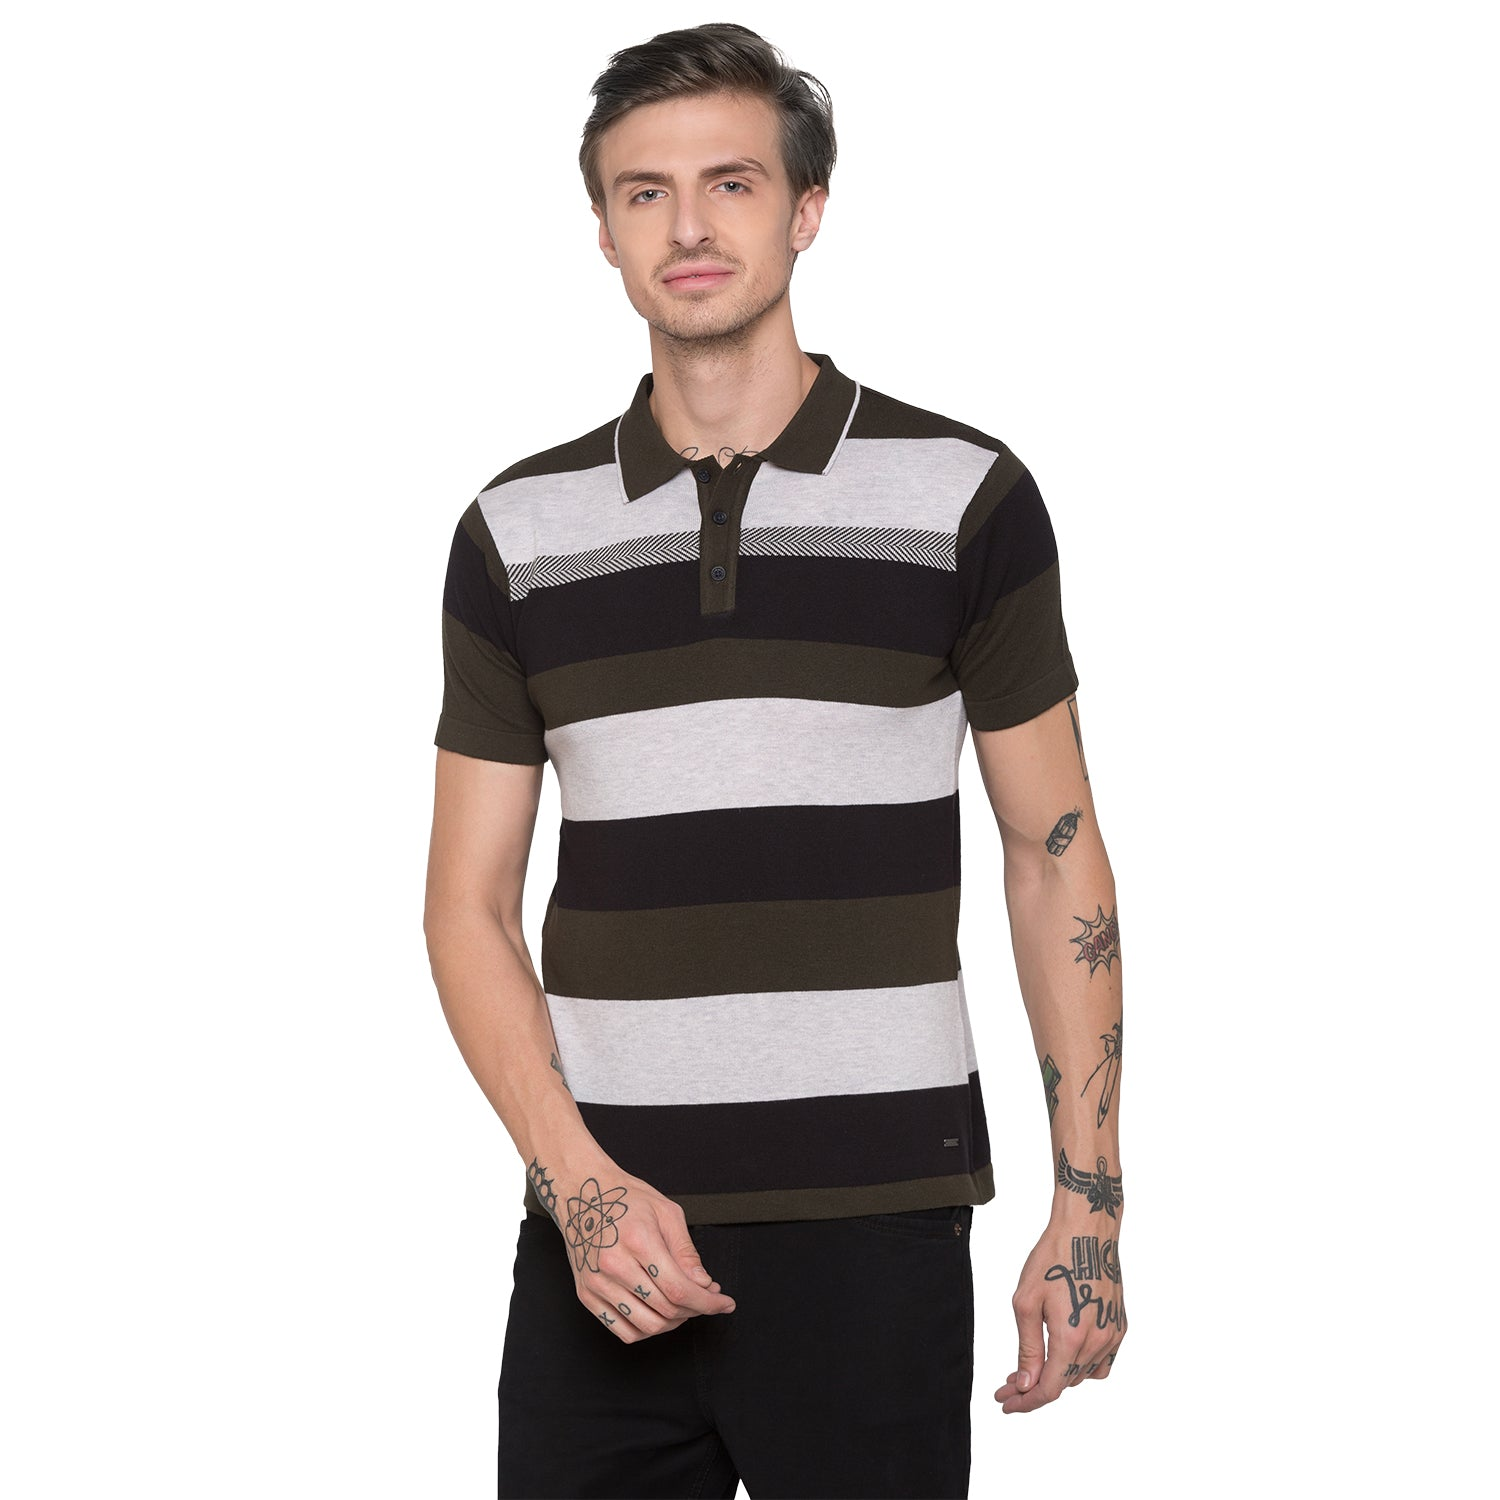 Globus Olive Striped Polo T-Shirt-1